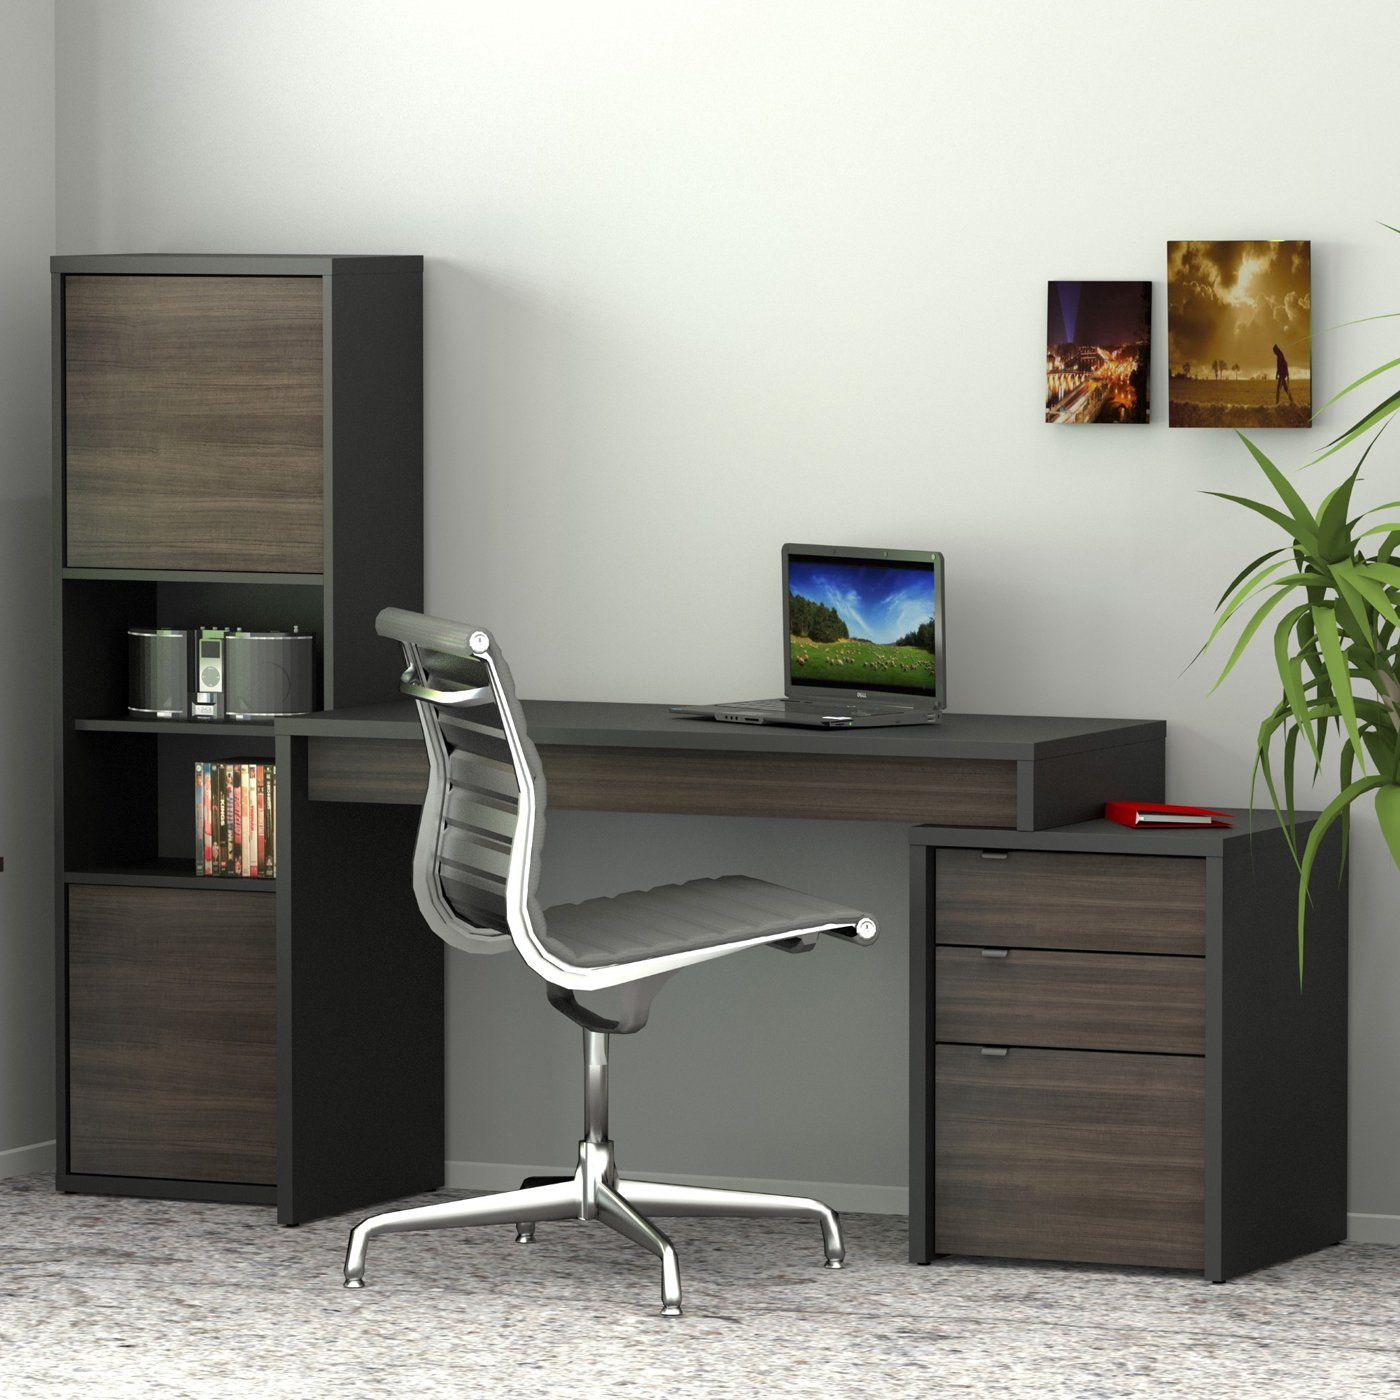 Shop Nexera 400468 Sereni T Home Office Set At Loweu0027s Canada. Find Our  Selection Of Home Office Furniture Sets U0026 Suites At The Lowest Price  Guaranteed With ...